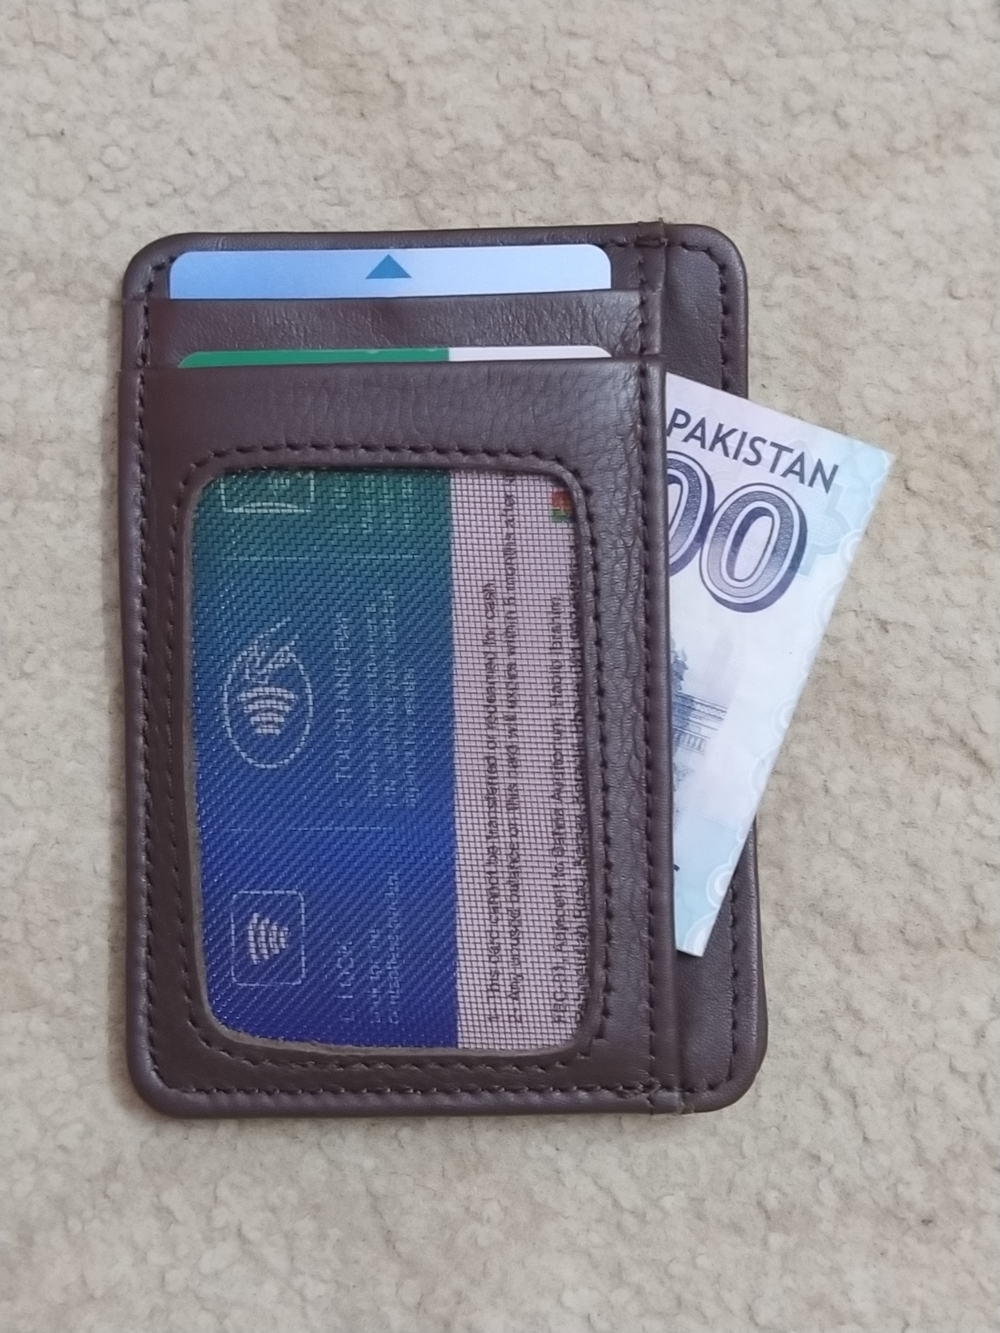 Slim Minimalist And Small Card Holder Wallet of Pure Cow Leather  To Carry  ATM  Credit  Contact Cards And Cash With 8 Pockets - Black